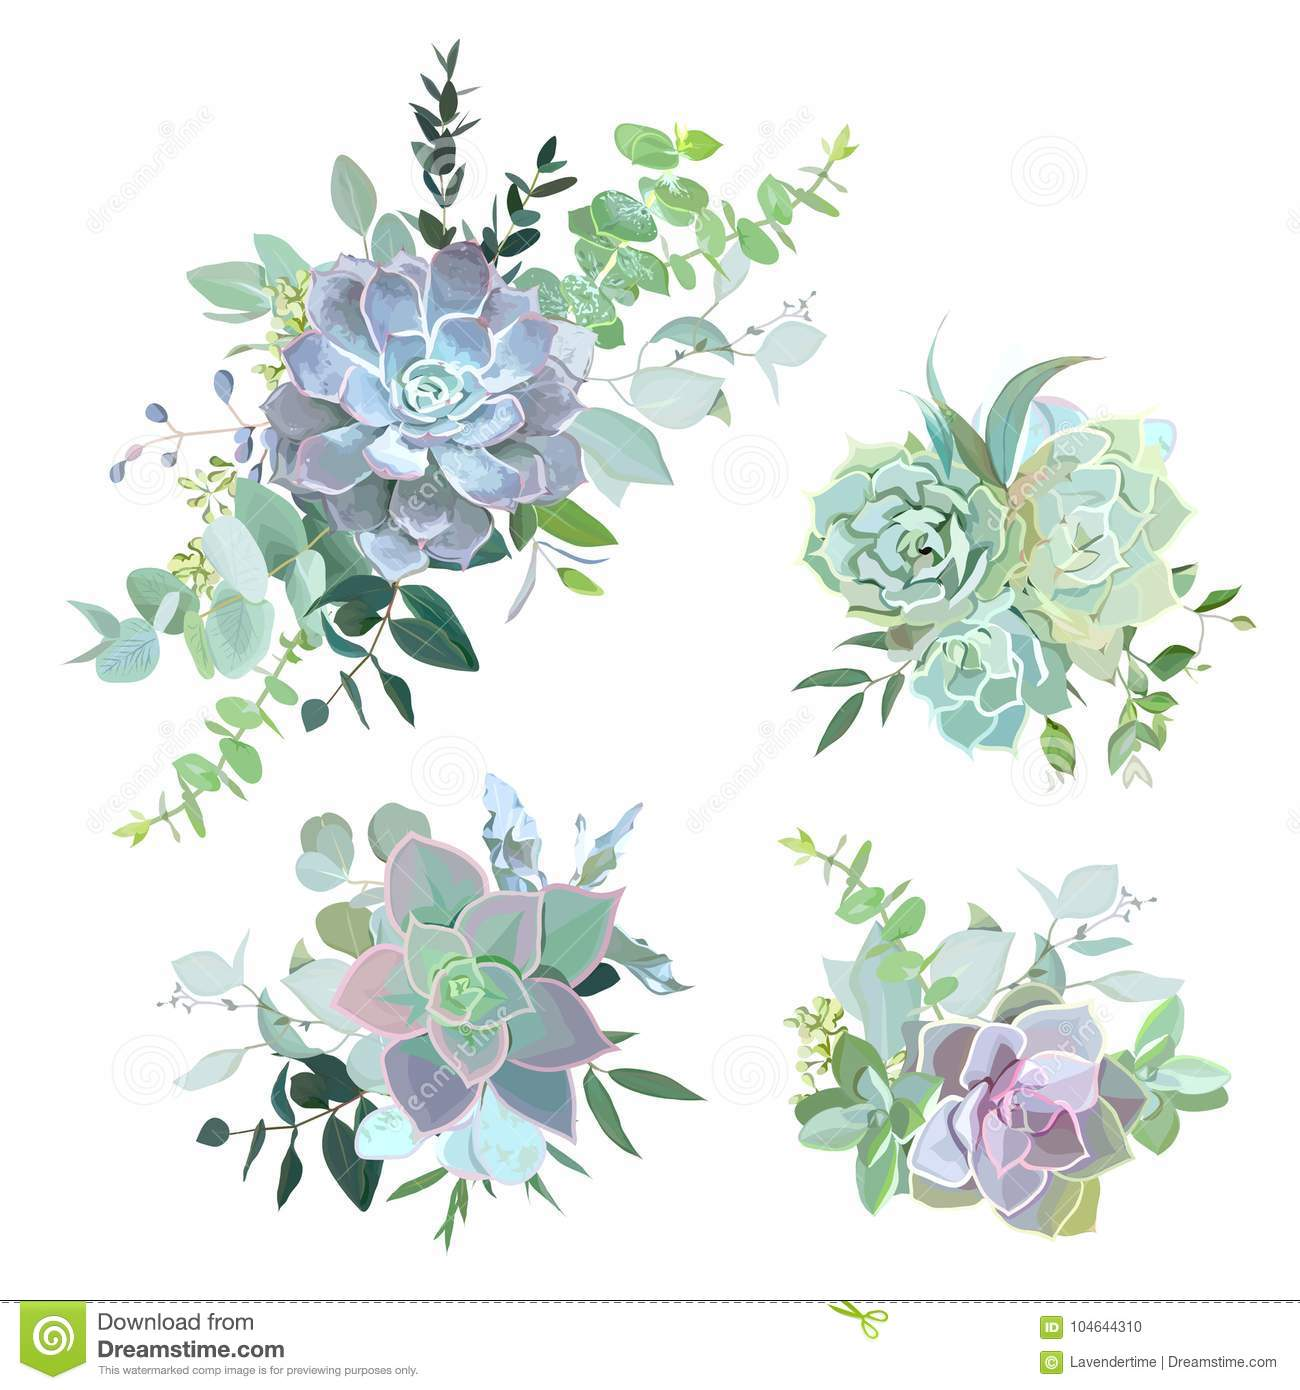 Green Colorful Succulent Bouquets Vector Design Objects Stock Vector Illustration Of Banner Drawing 104644310